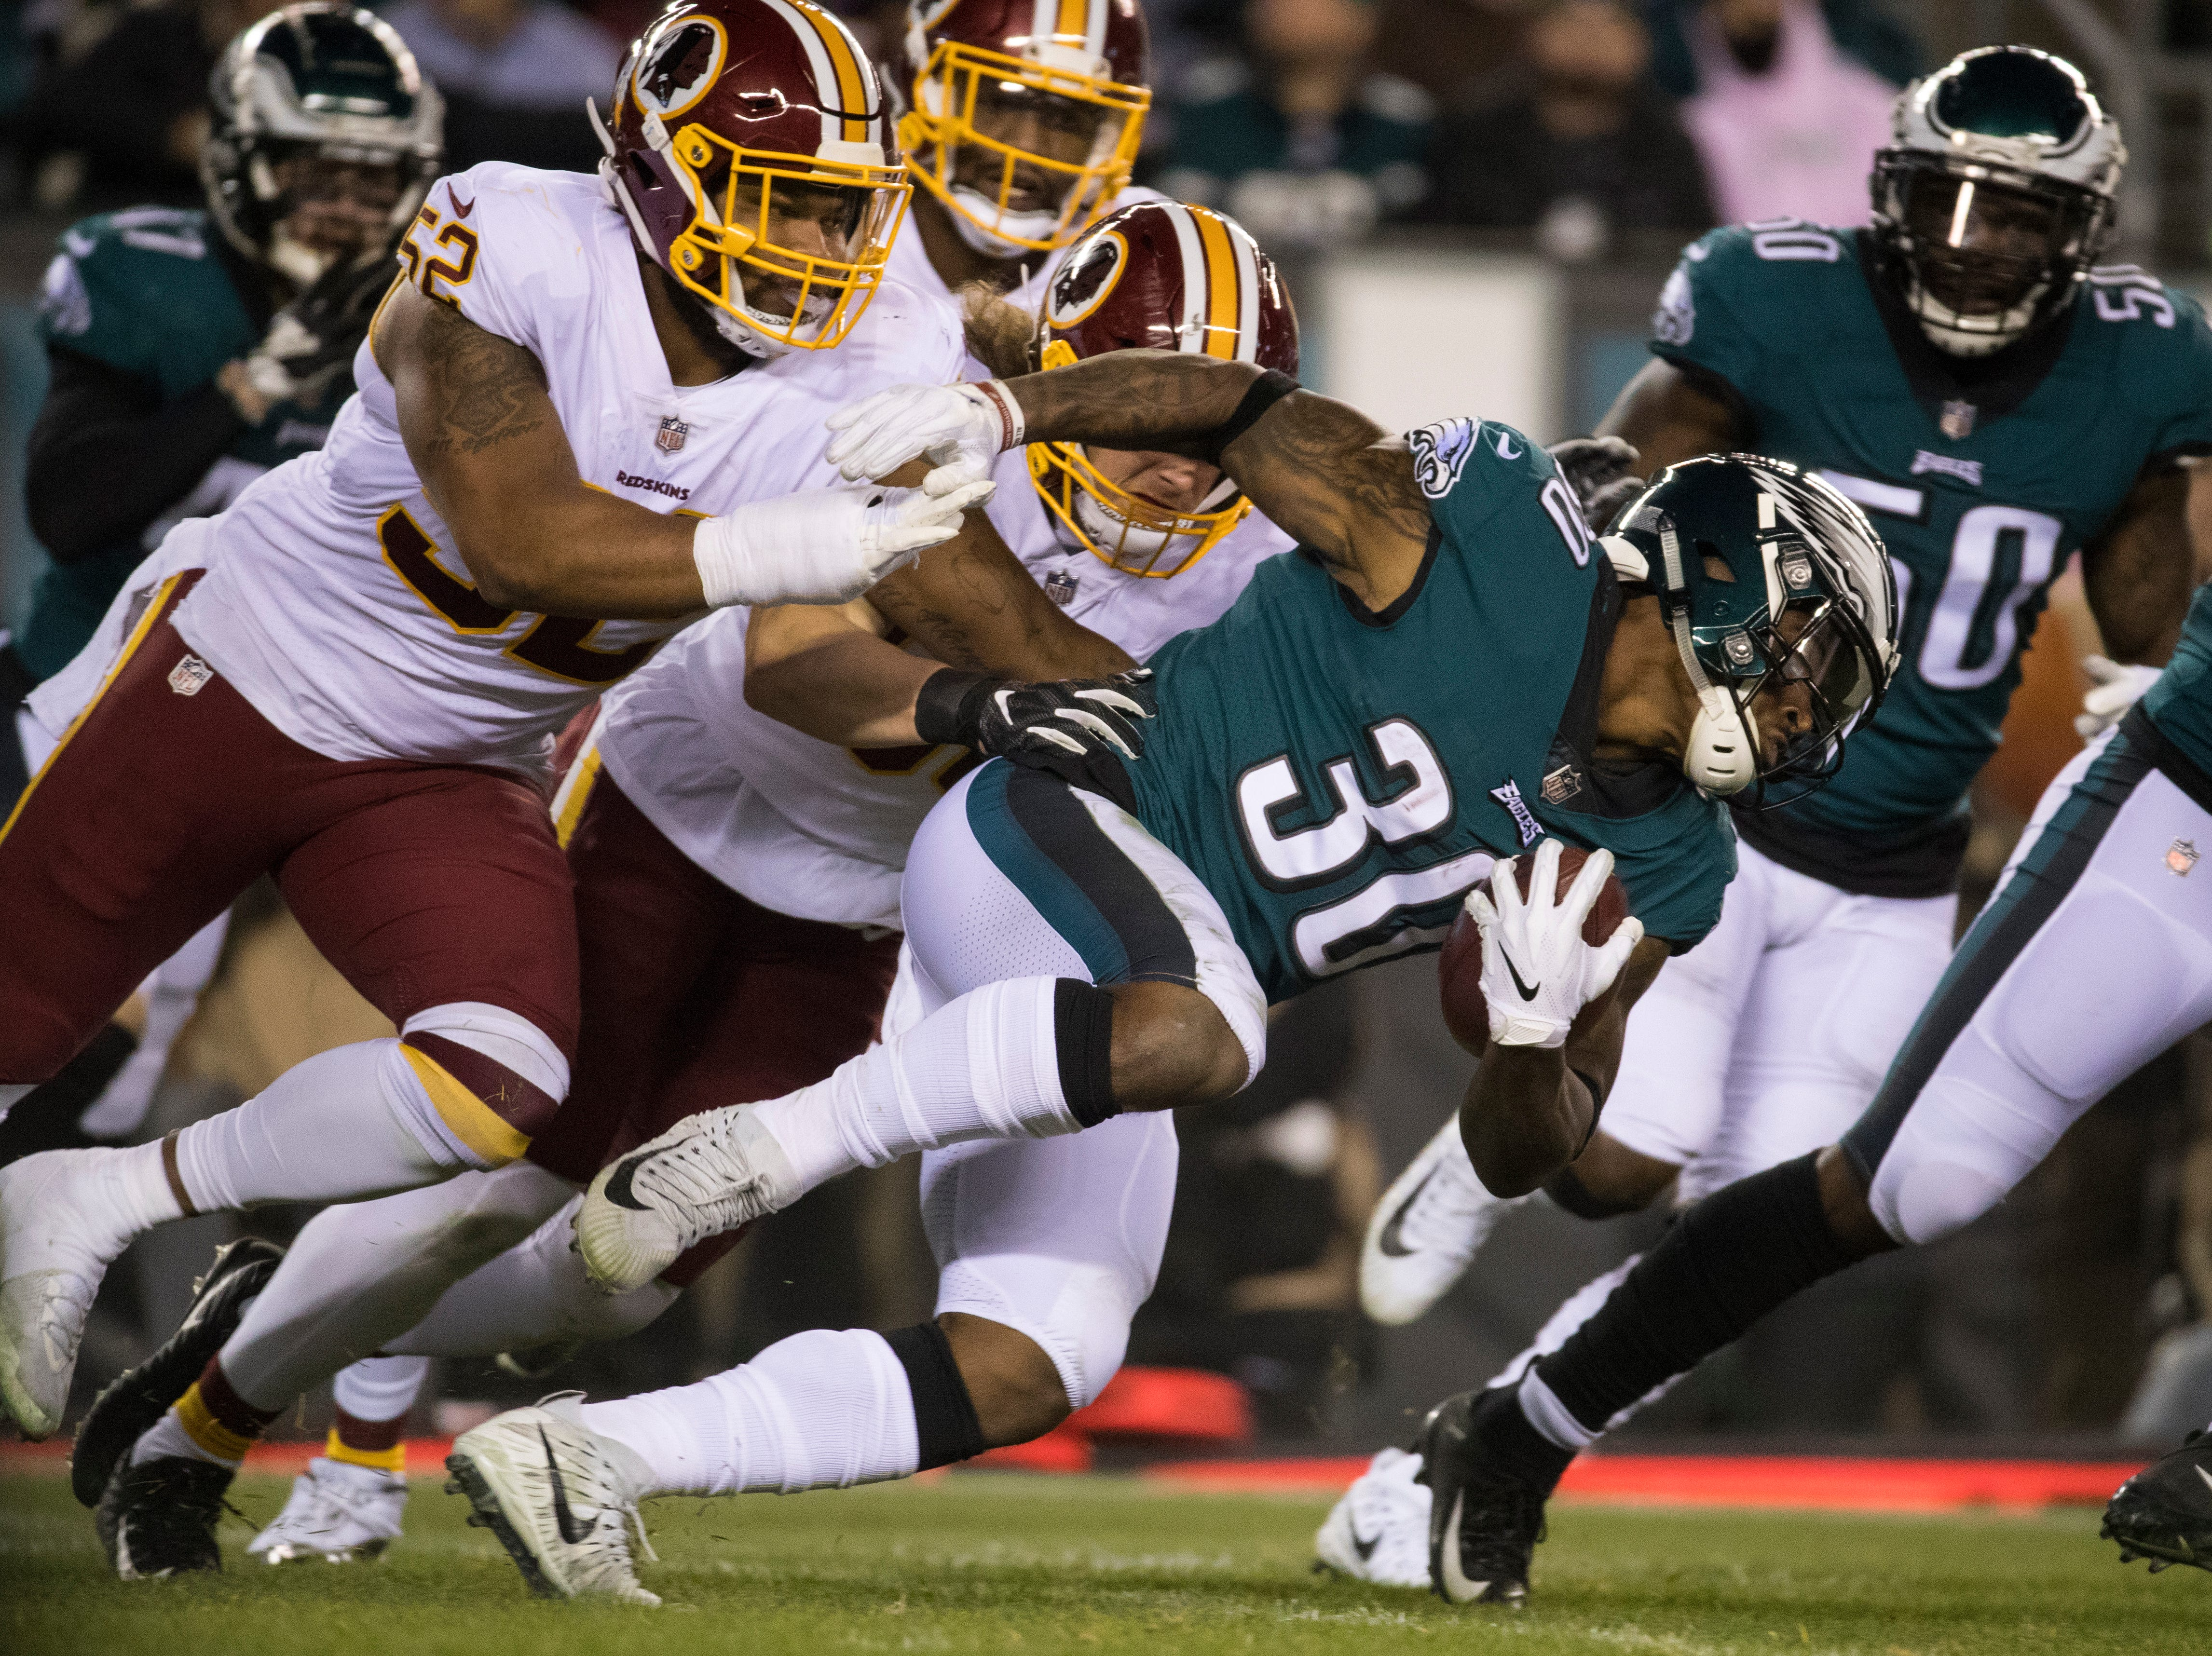 Eagles' Corey Clement (30) returns a kickoff Monday night against the Redskins.